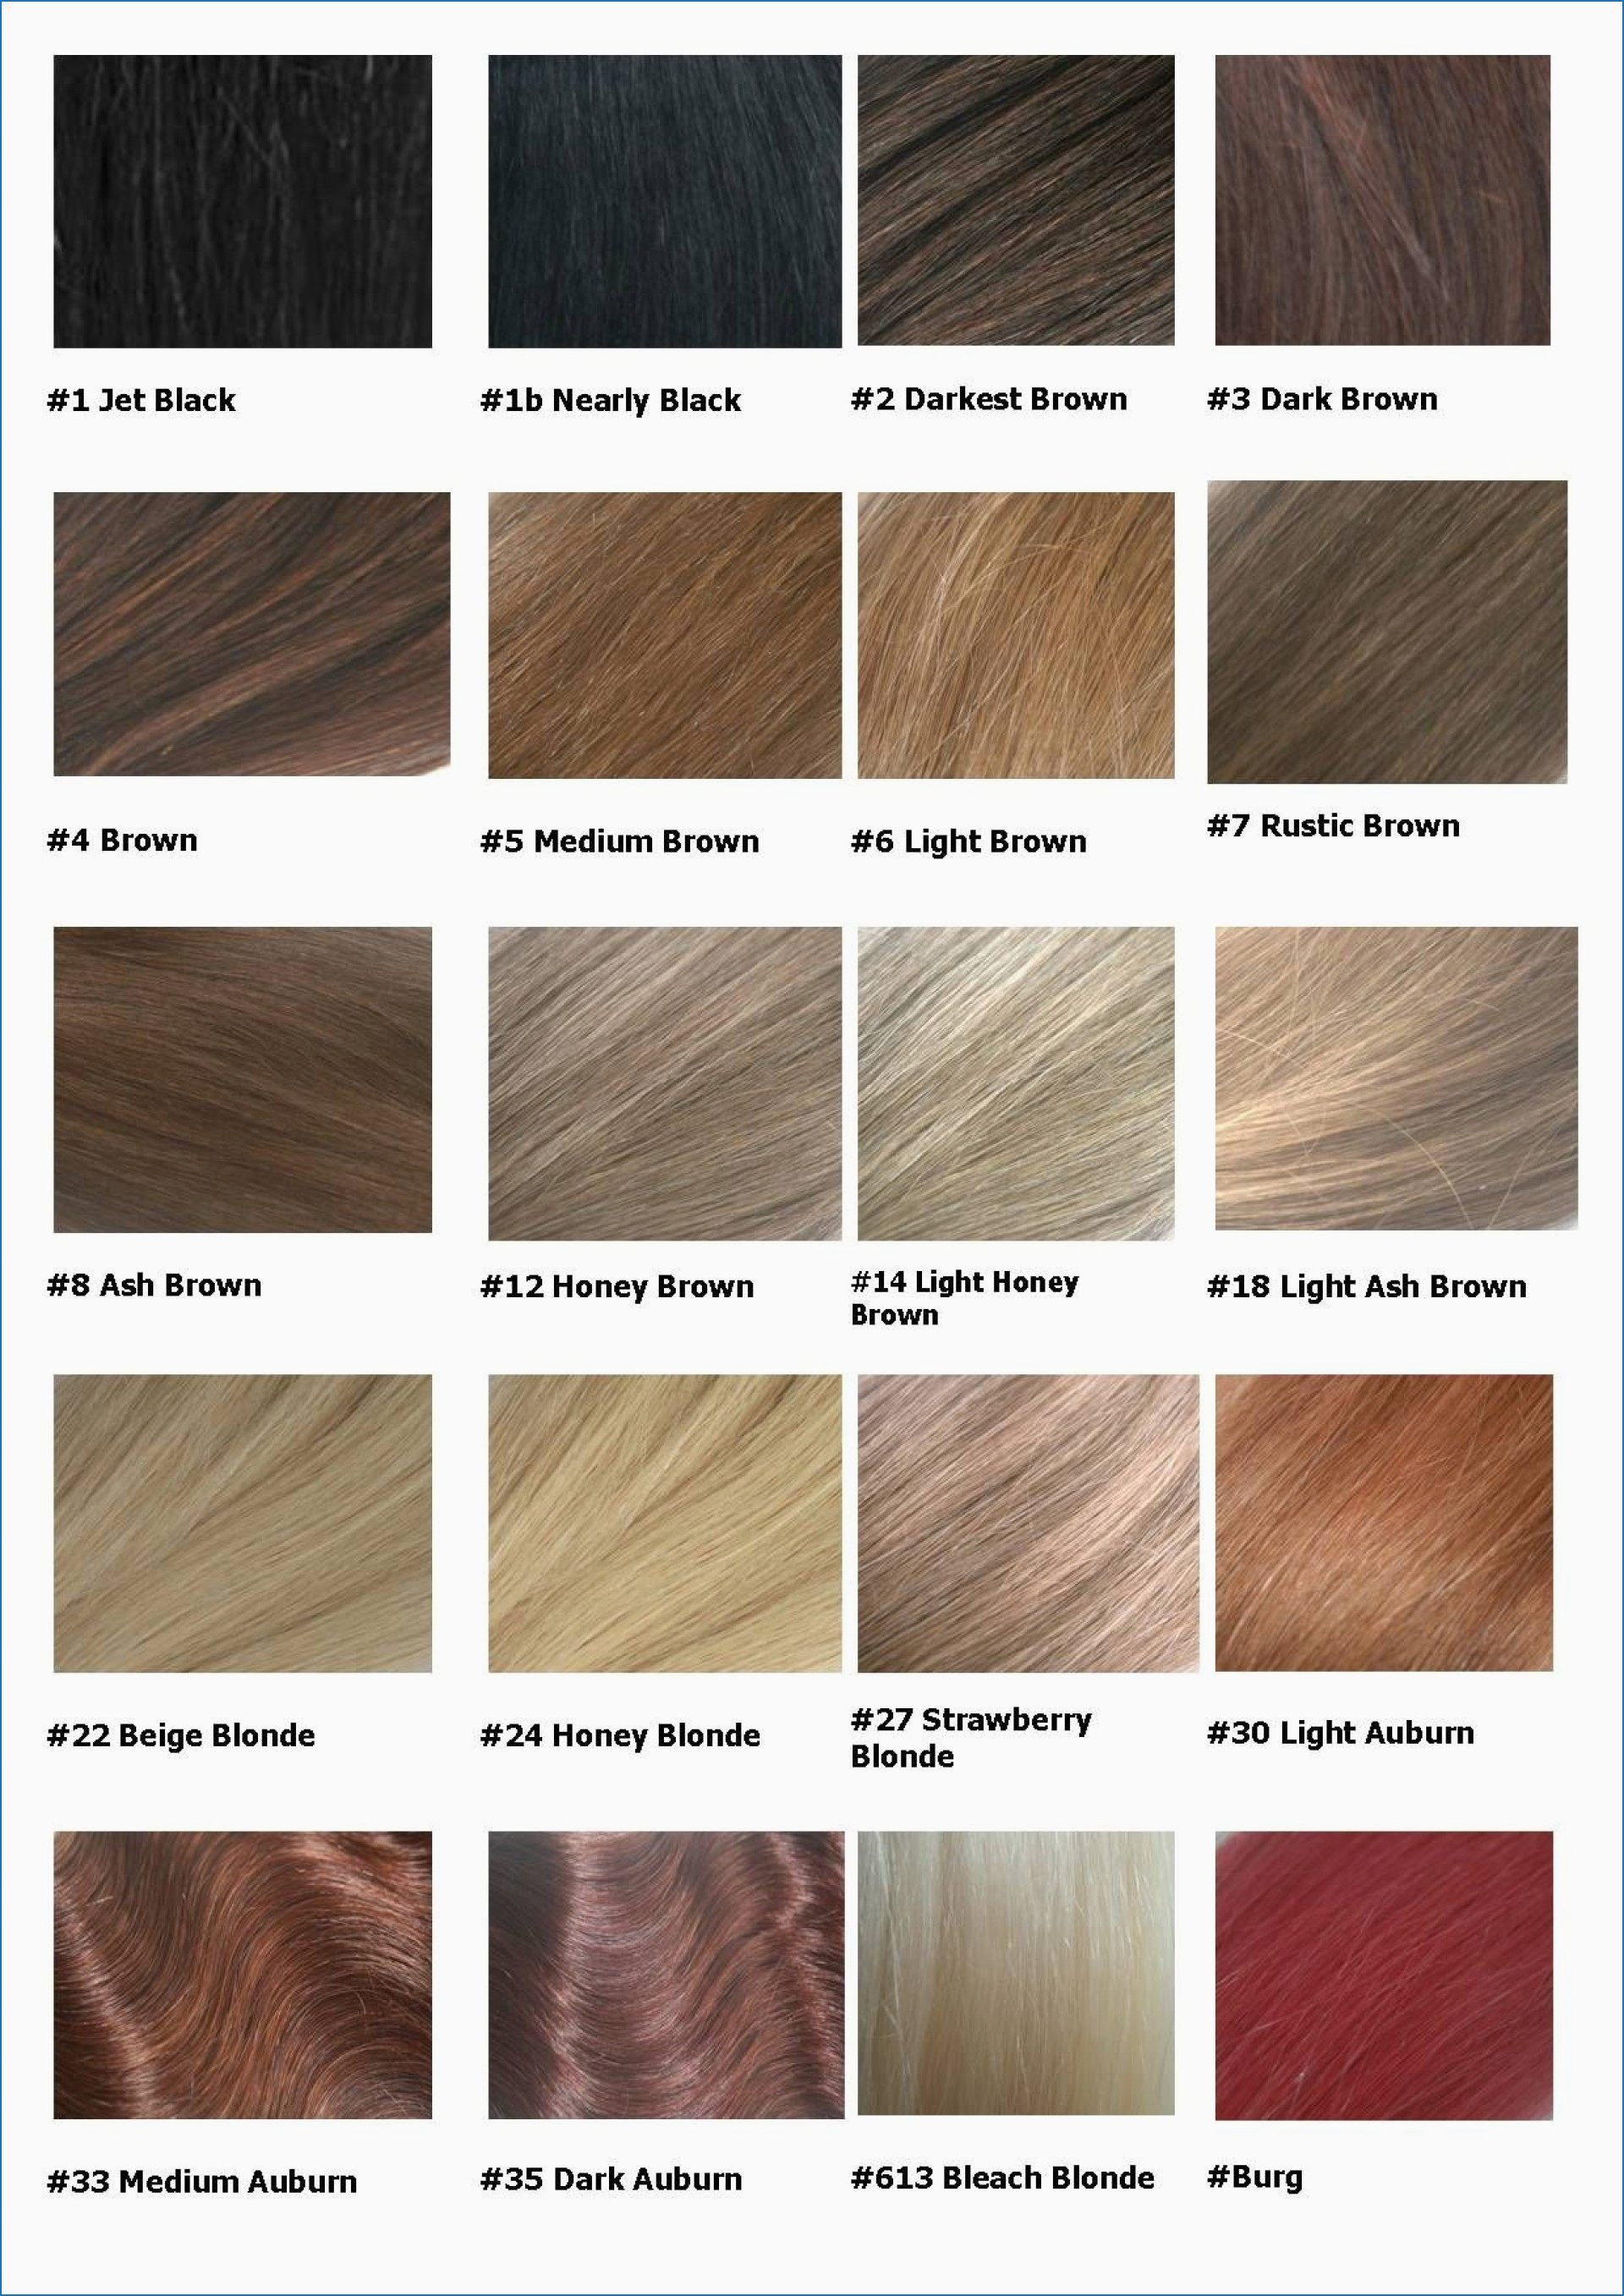 Wella Dark Ash Brown Ash Brown Hair Color Beige Blonde Hair